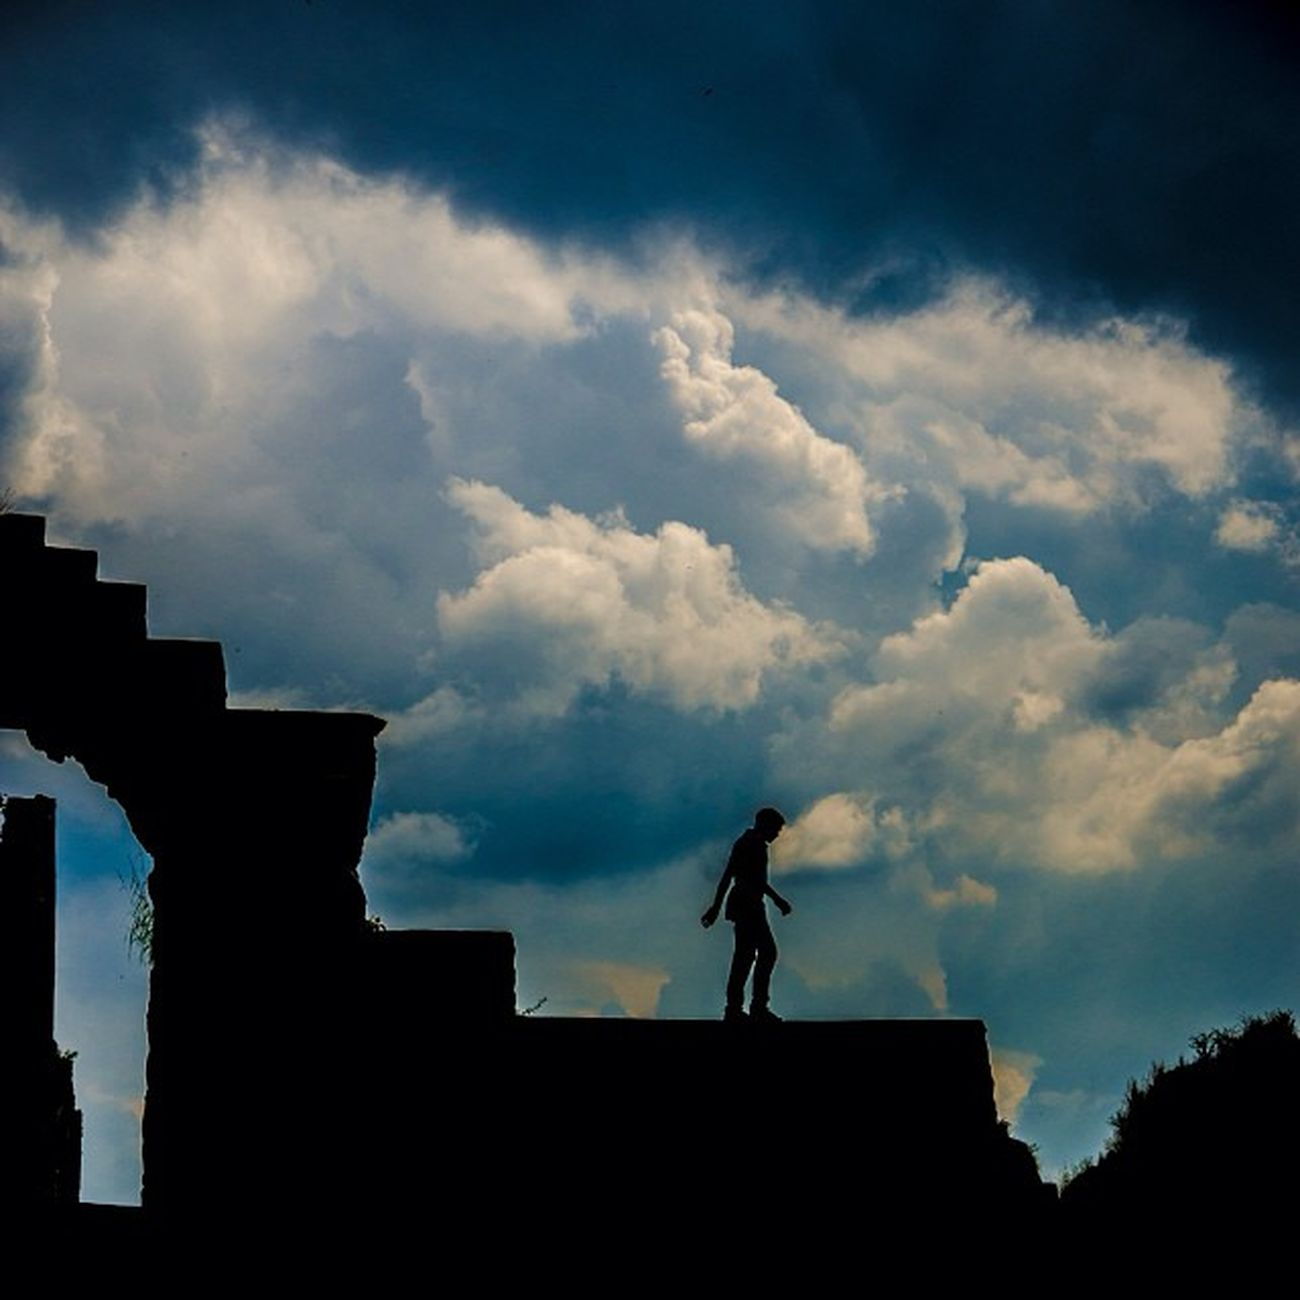 Silhouette Photography Ihithro Picoftheday bestoftheday photooftheday nikon imagehub instagram instago instagood instaplace in hyderabad india golkonda fort blue sky followme facebook page